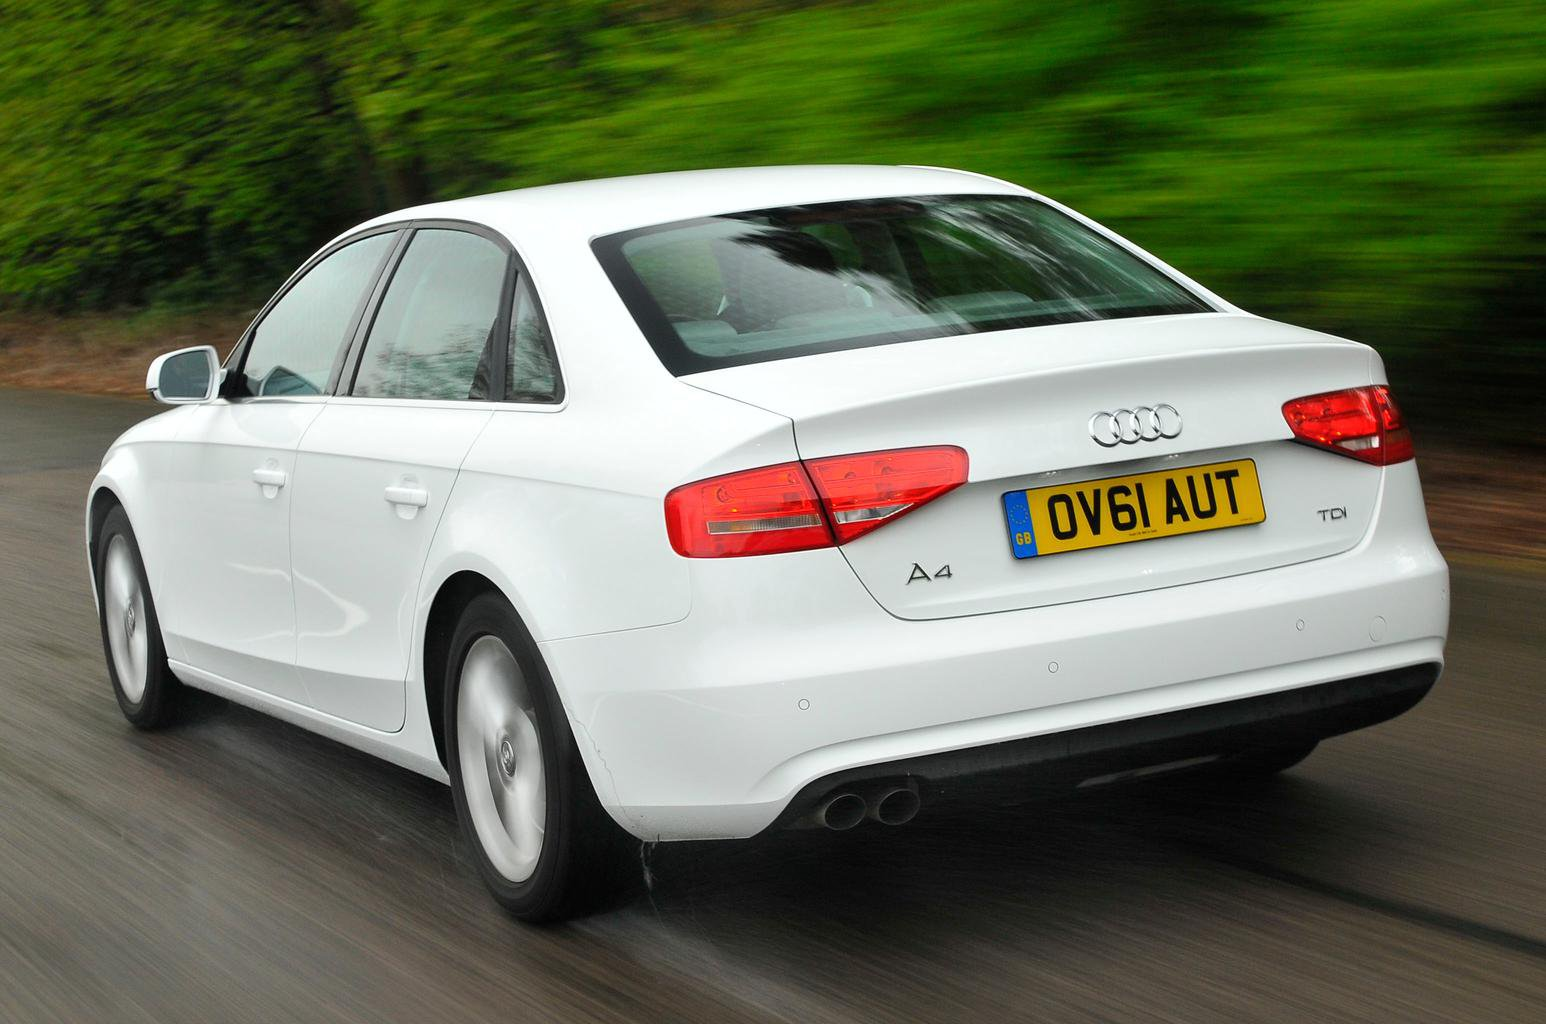 Used test – business class: Audi A4 vs BMW 3 Series vs Citroen DS5 vs Mercedes C-Class